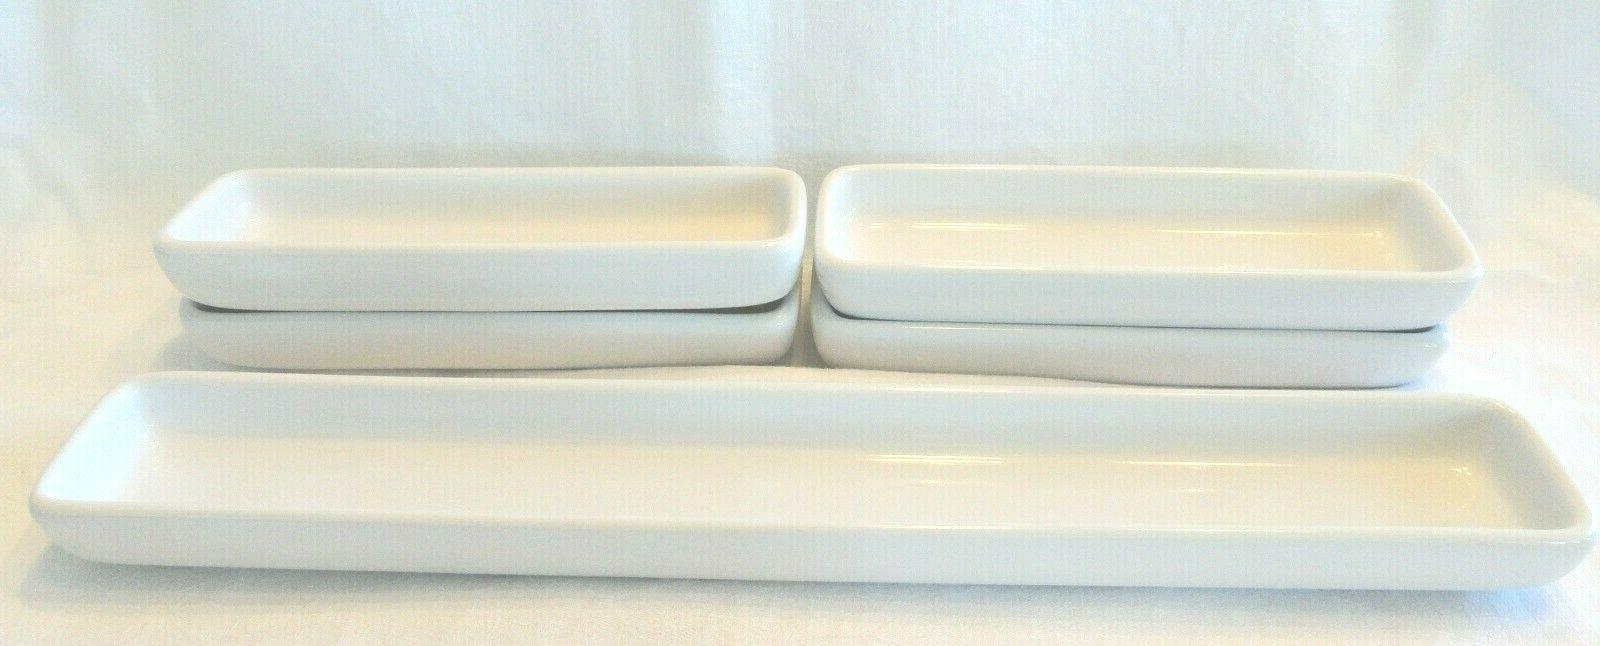 simple additions hospitality boat trays dish set